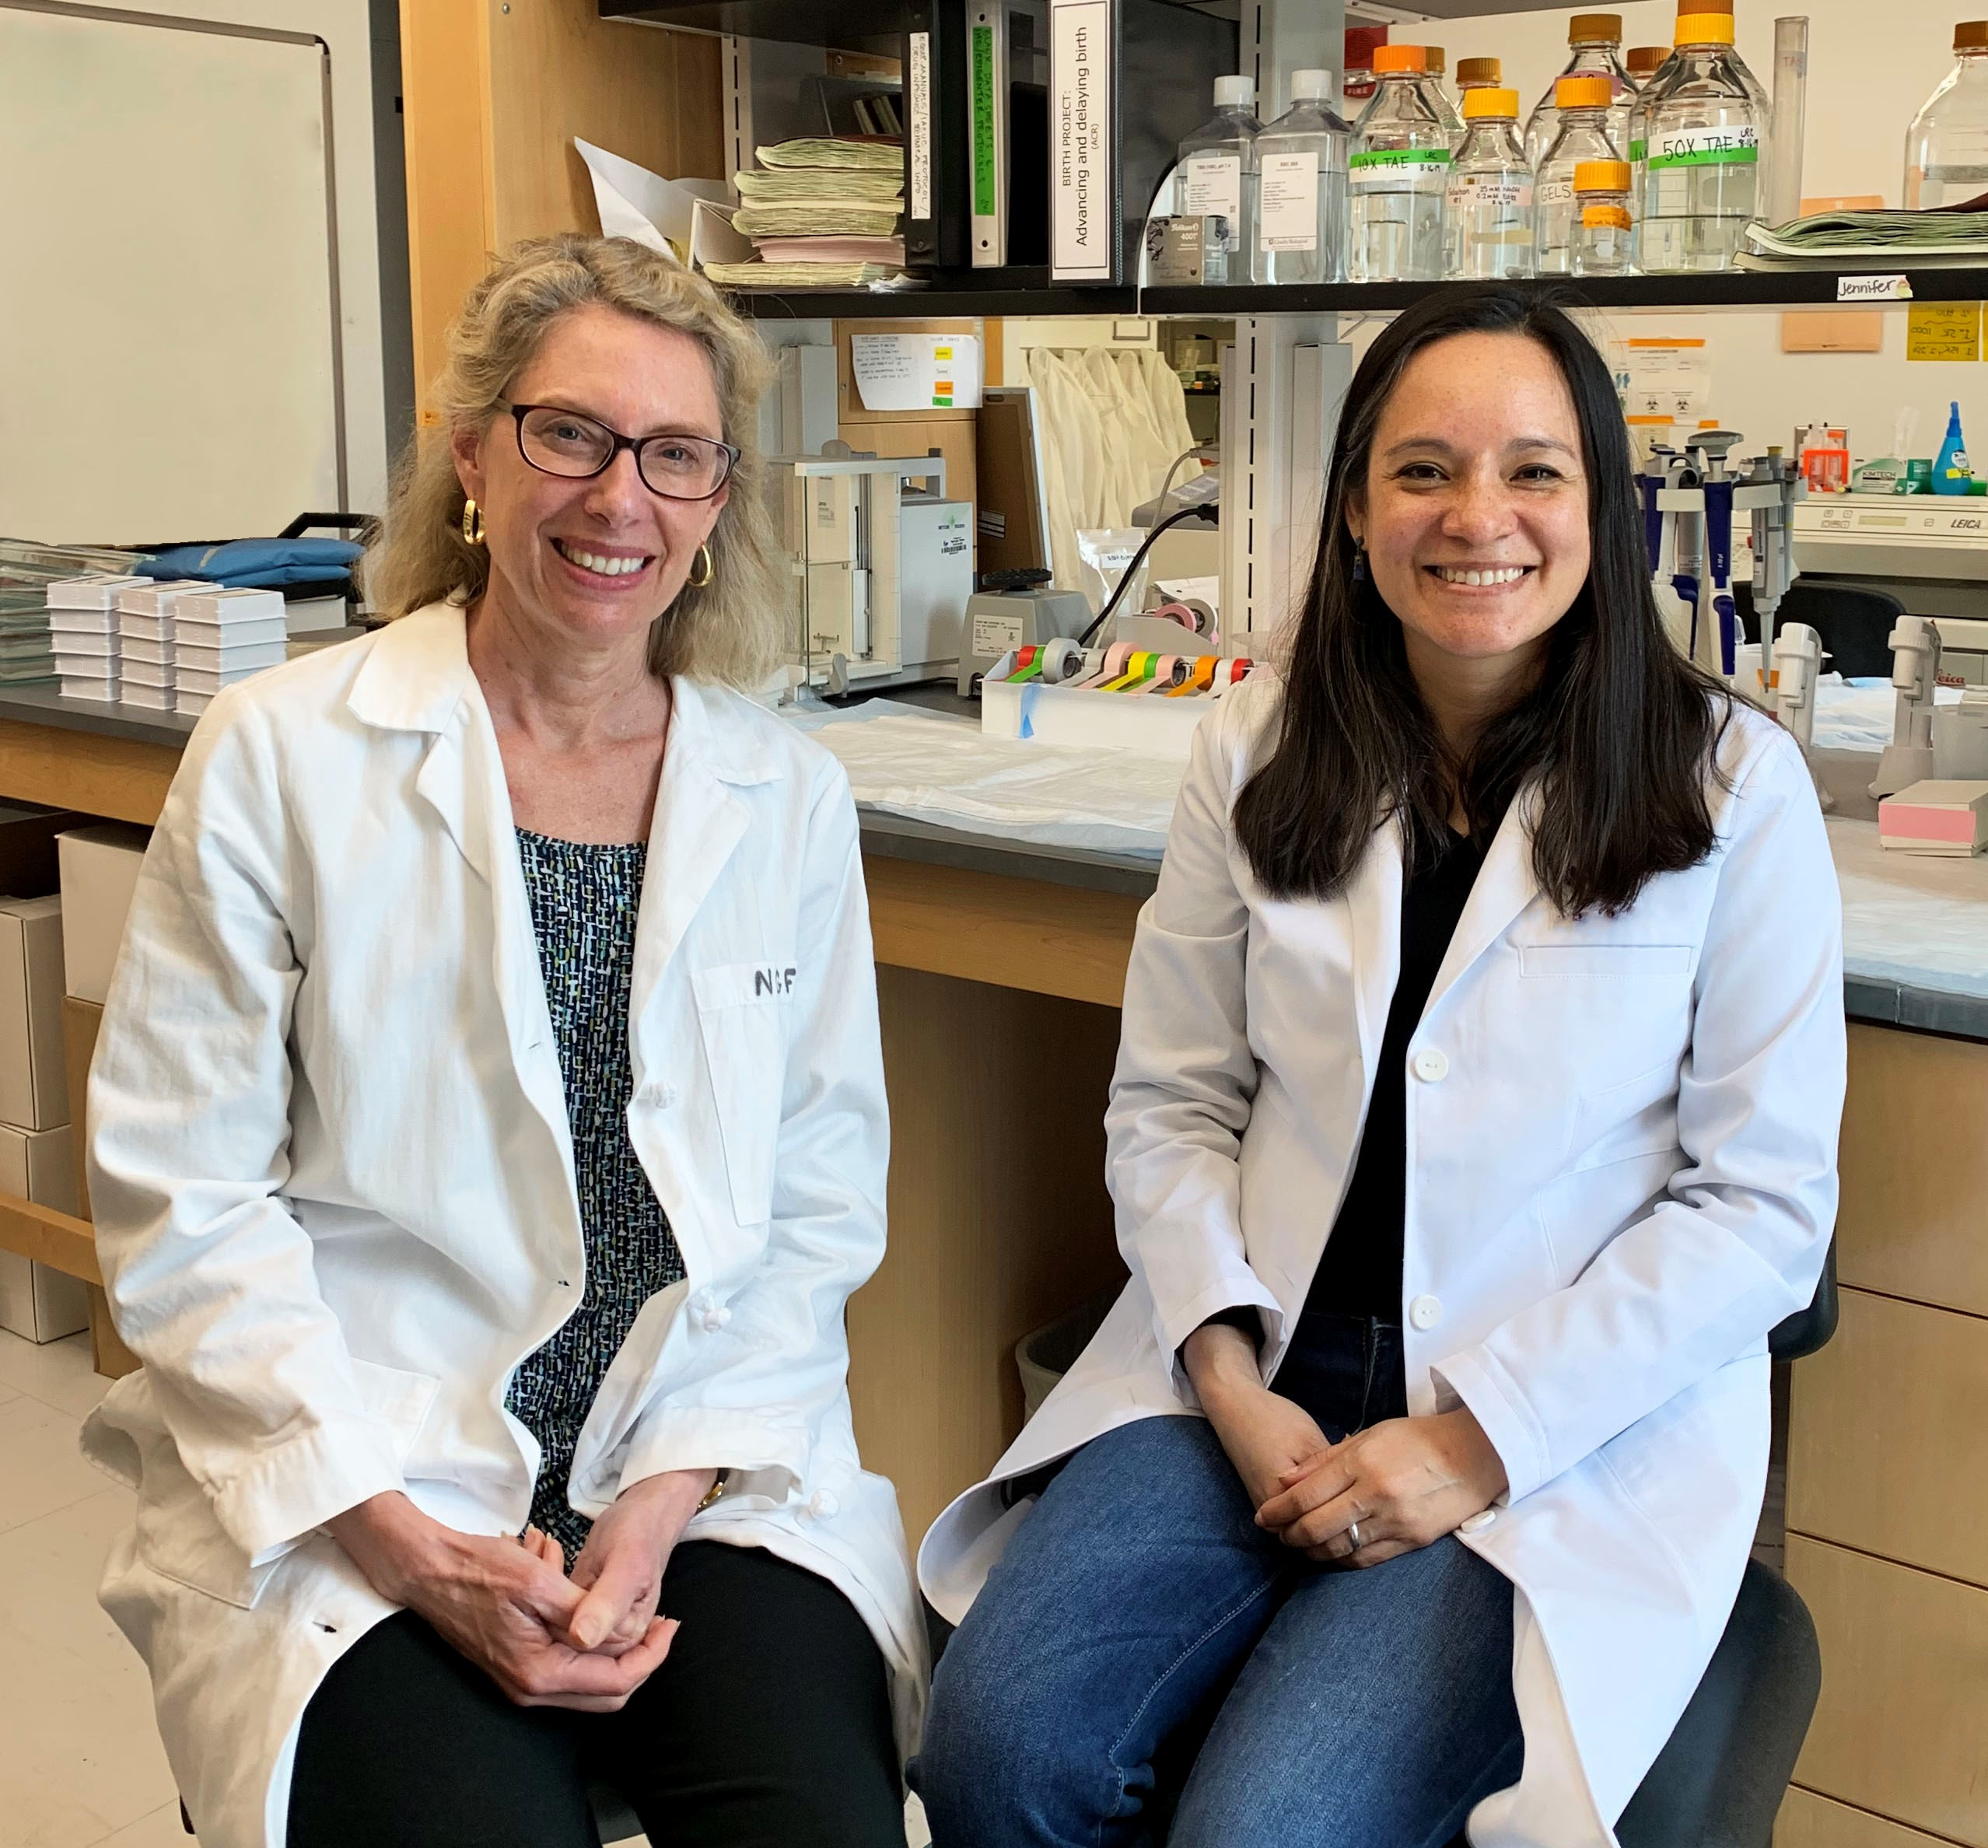 Drs. Alexandra Castillo-Ruiz and Nancy Forger sitting in their lab.